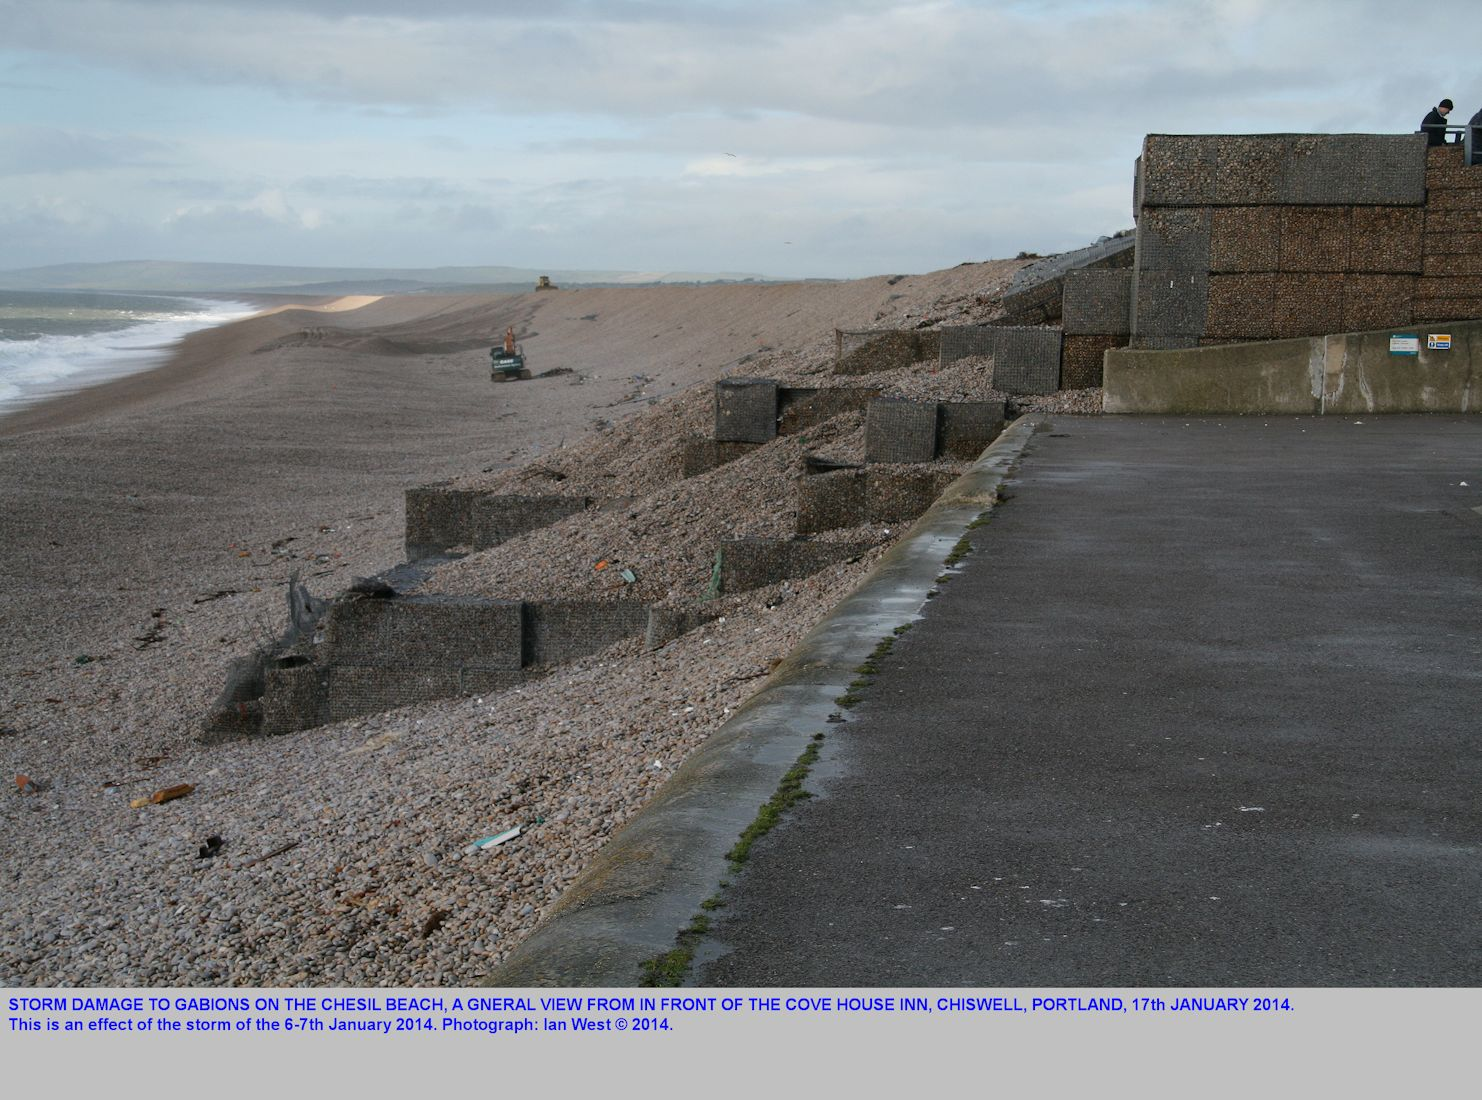 A general view of the damaged gabions of the Chesil Beach, on the 17th January 2014, near the Cove House Inn, and after the storm of the 6-7th January 2014